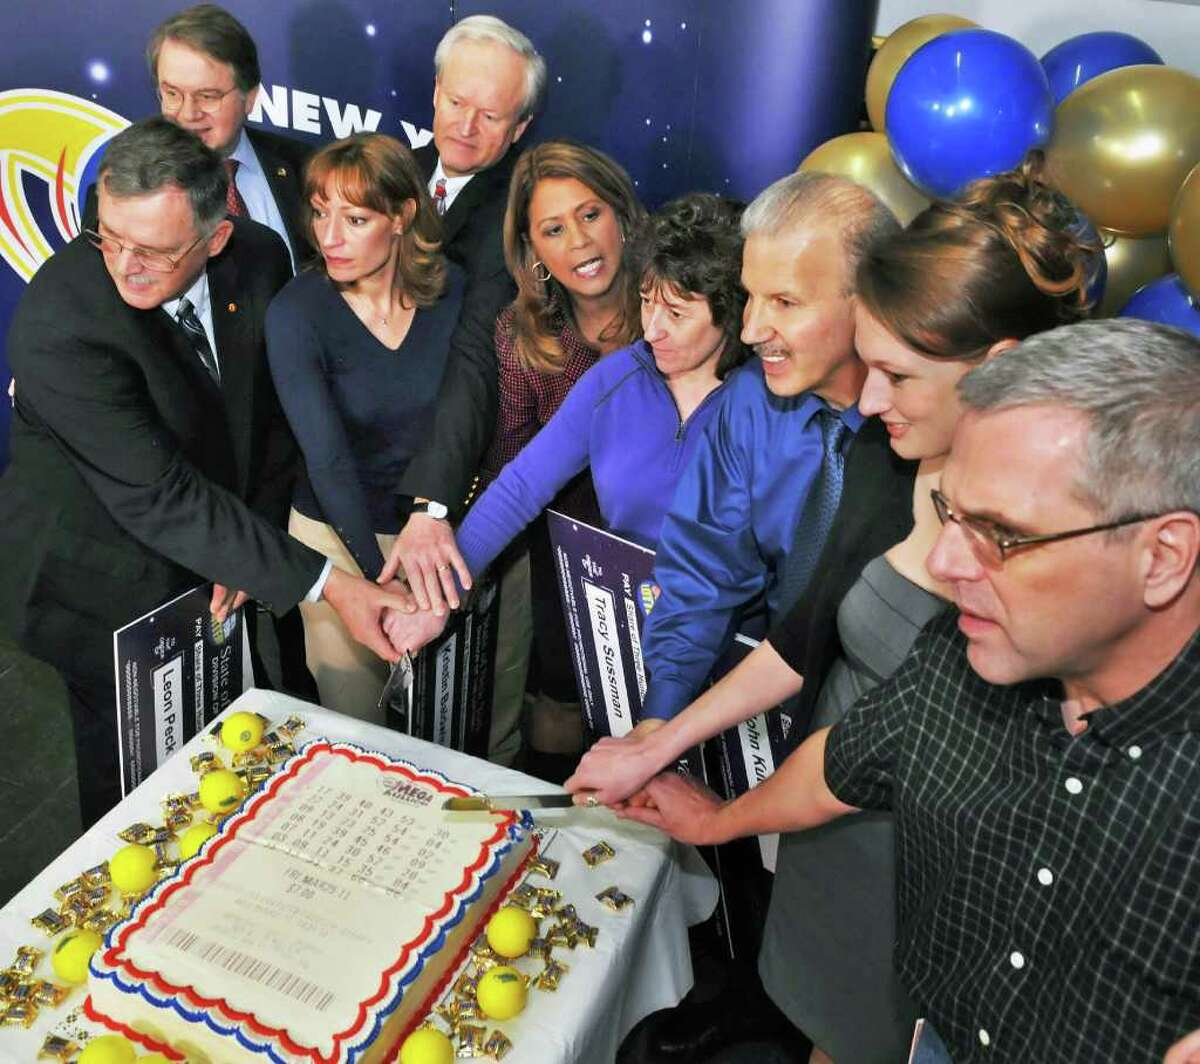 """Posing with a """"Lottery Cake"""" are , from left, Newest lottery millionaires, from left, Leon Peck of Johnstown, N.Y. Lottery Director Gordon Medencia Kristin Baldwin of Clifton Park, Mike Barth of Bethlehem, the Lottery's Yolanda Vega, Tracy Sussman of Colonie, John Kutey of Green Island, Gabrielle Mahar of Colonie and John Hilton of North Greenbush during a news conference at the New York Lottery offices in Schenectady Thursday morning March 31, 2011. The seven winners of the $319 million Mega Millions, are state workers with the NYS Homes and Community Renewal and bought the winning ticket at Coulson's, around the corner from their downtown Albany office. (John Carl D'Annibale / Times Union)"""